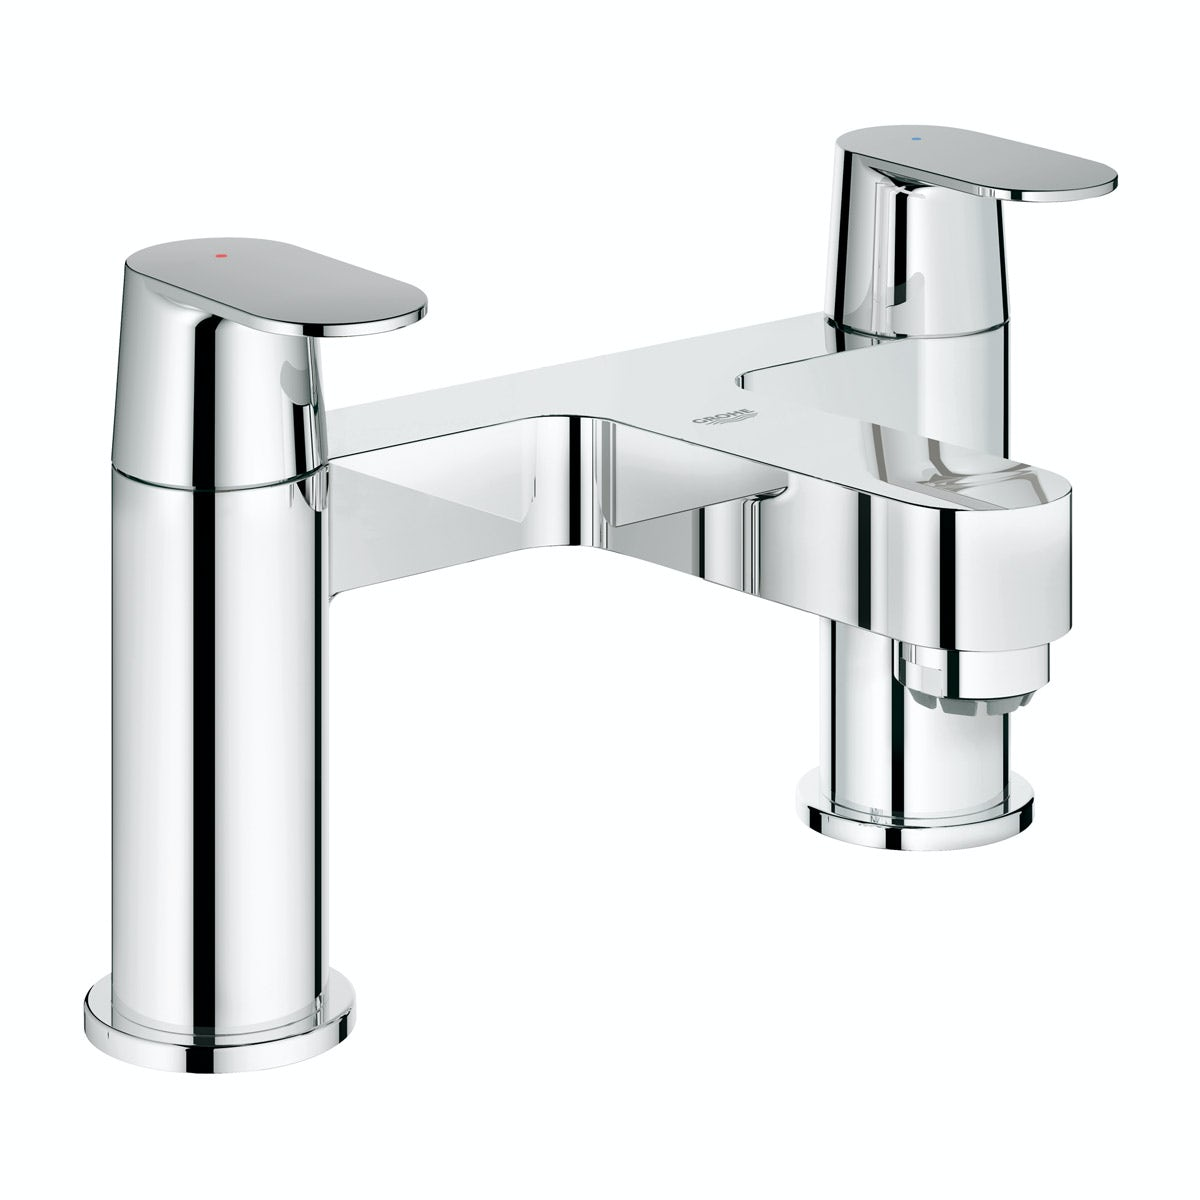 grohe eurosmart cosmopolitan bath mixer tap. Black Bedroom Furniture Sets. Home Design Ideas